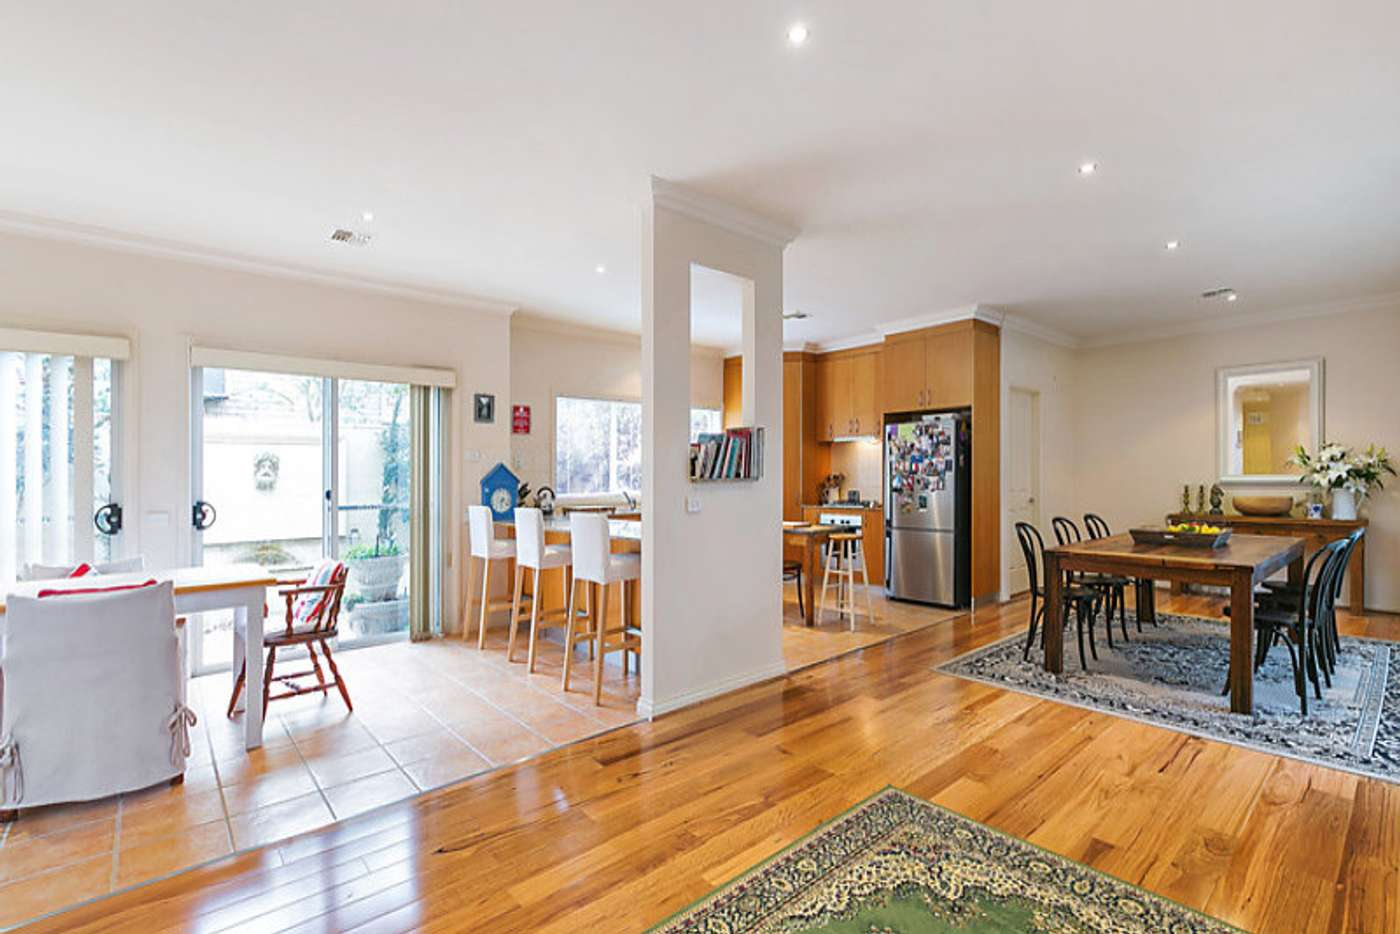 Main view of Homely house listing, 48 Charman Road, Mentone VIC 3194